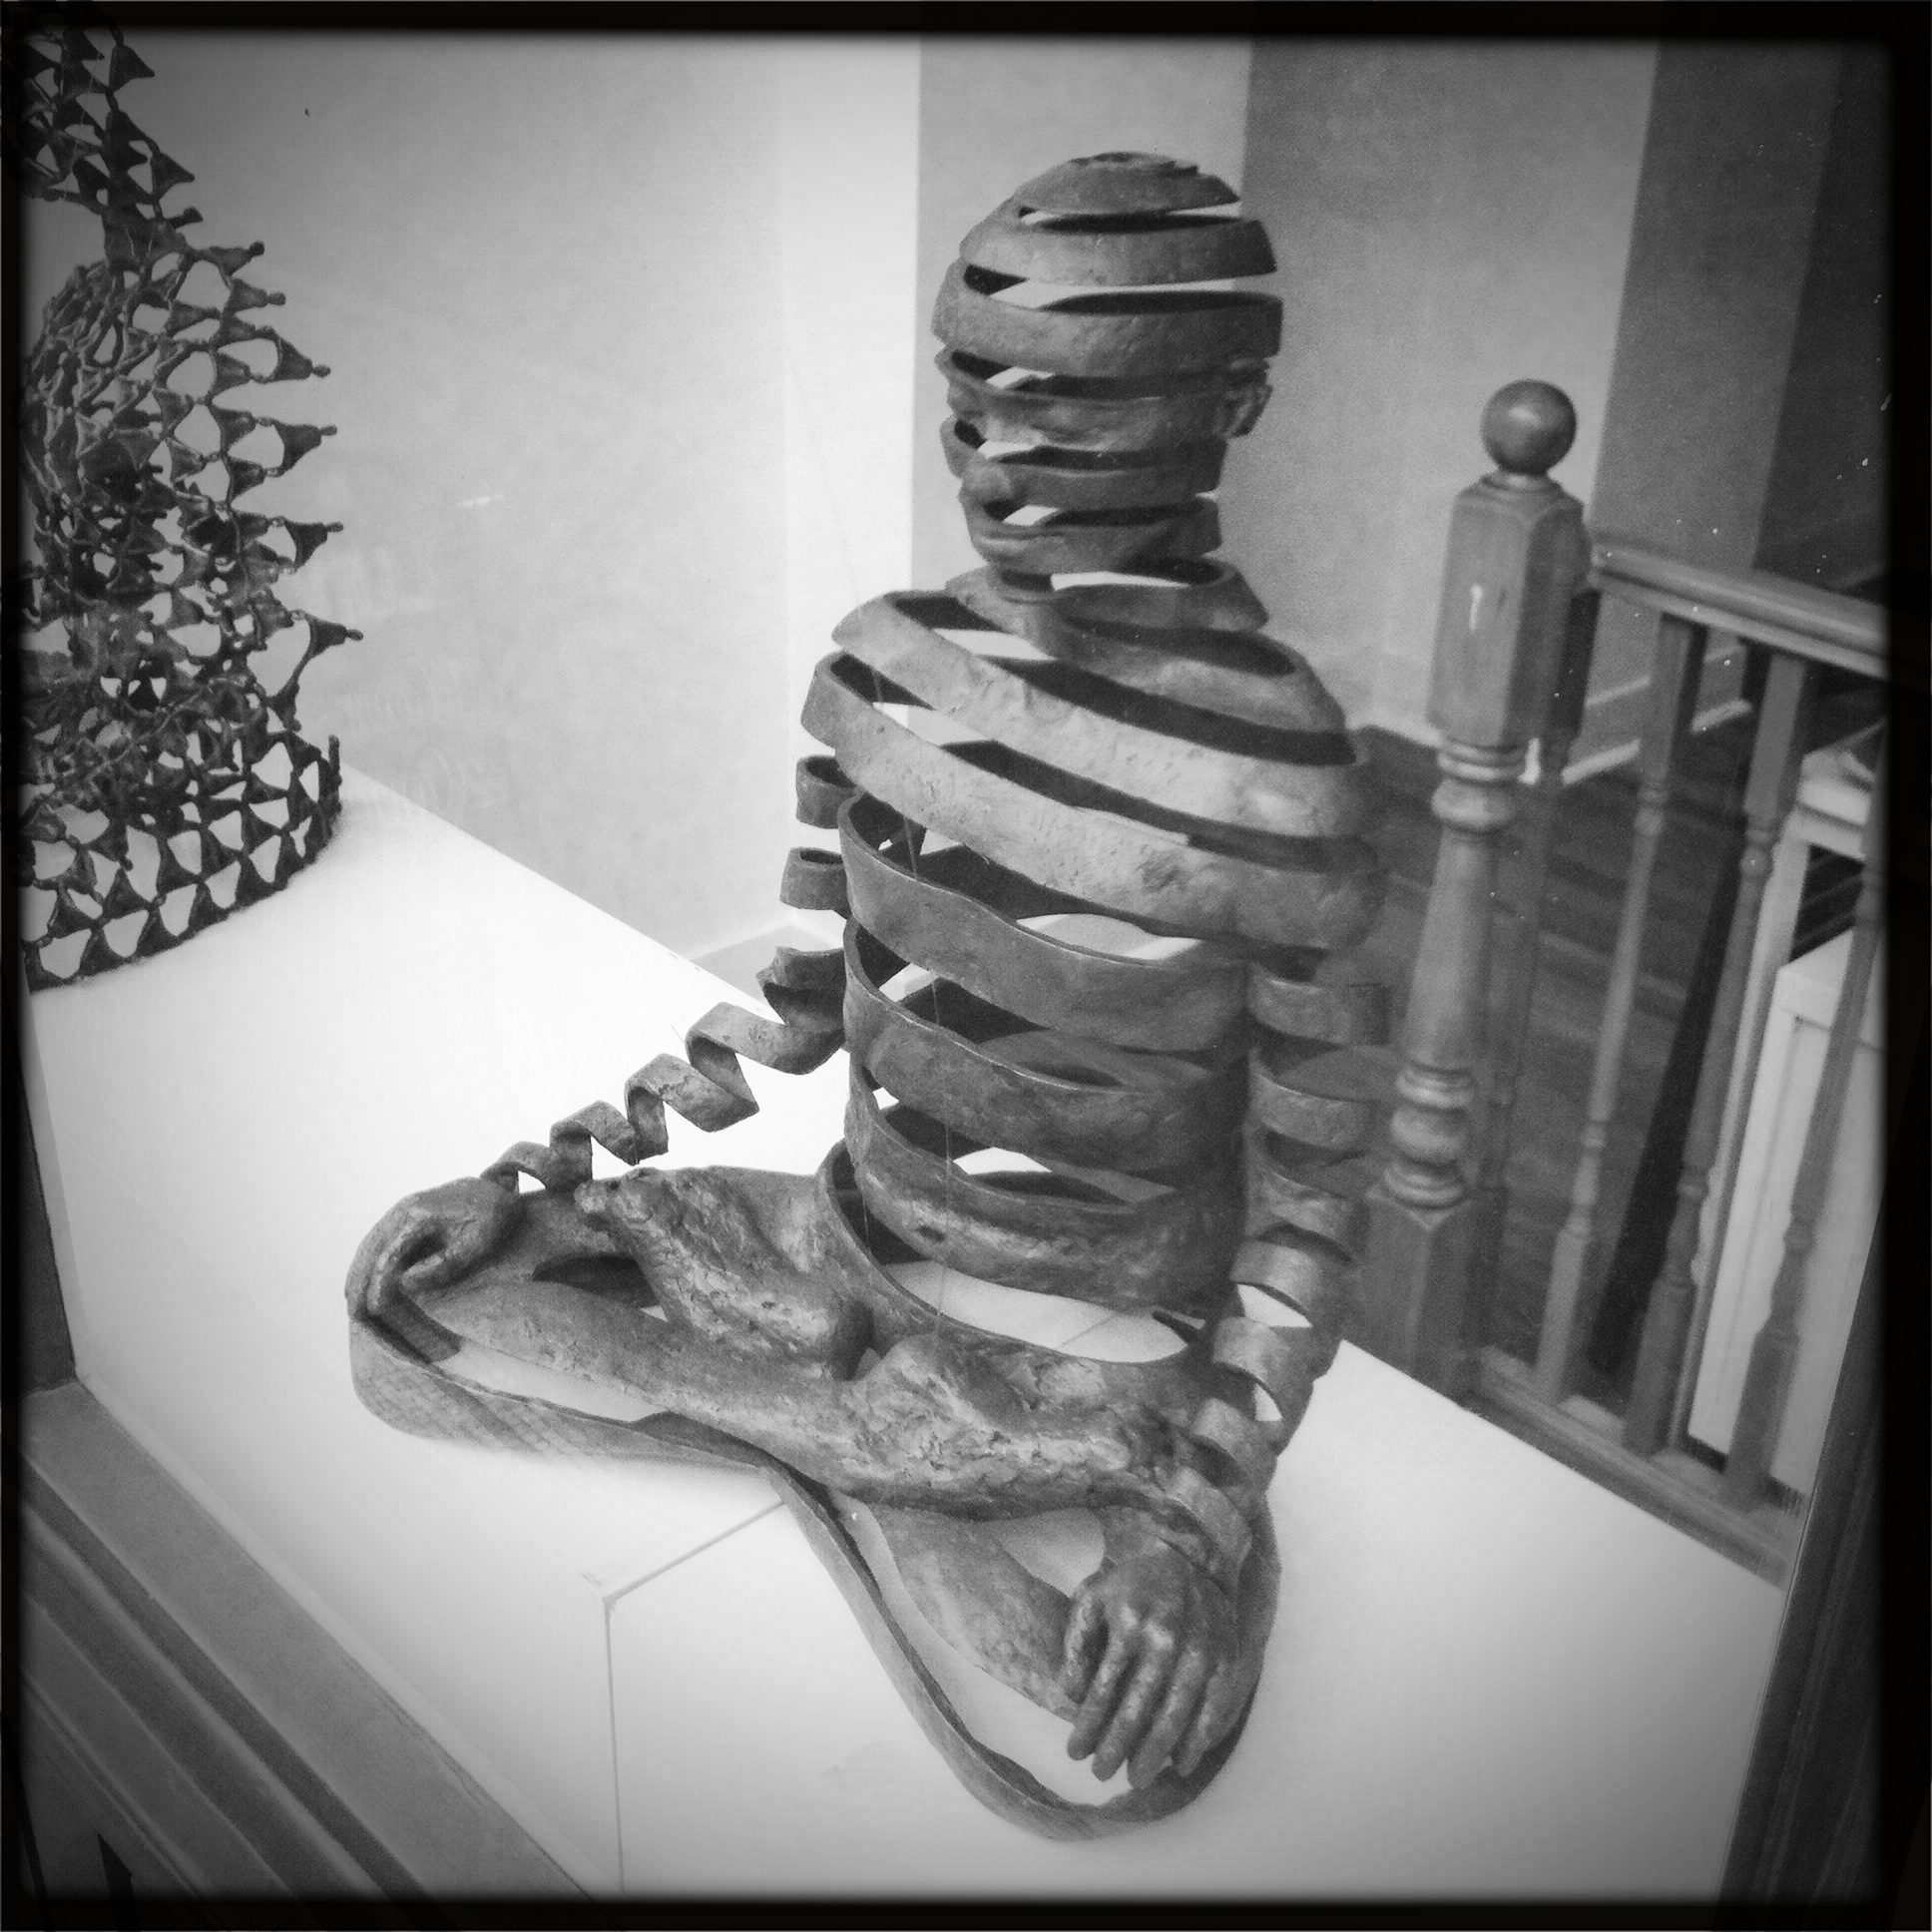 Pphoto taken from a gallery in London - a spiritual practitioner experiencing transformation.